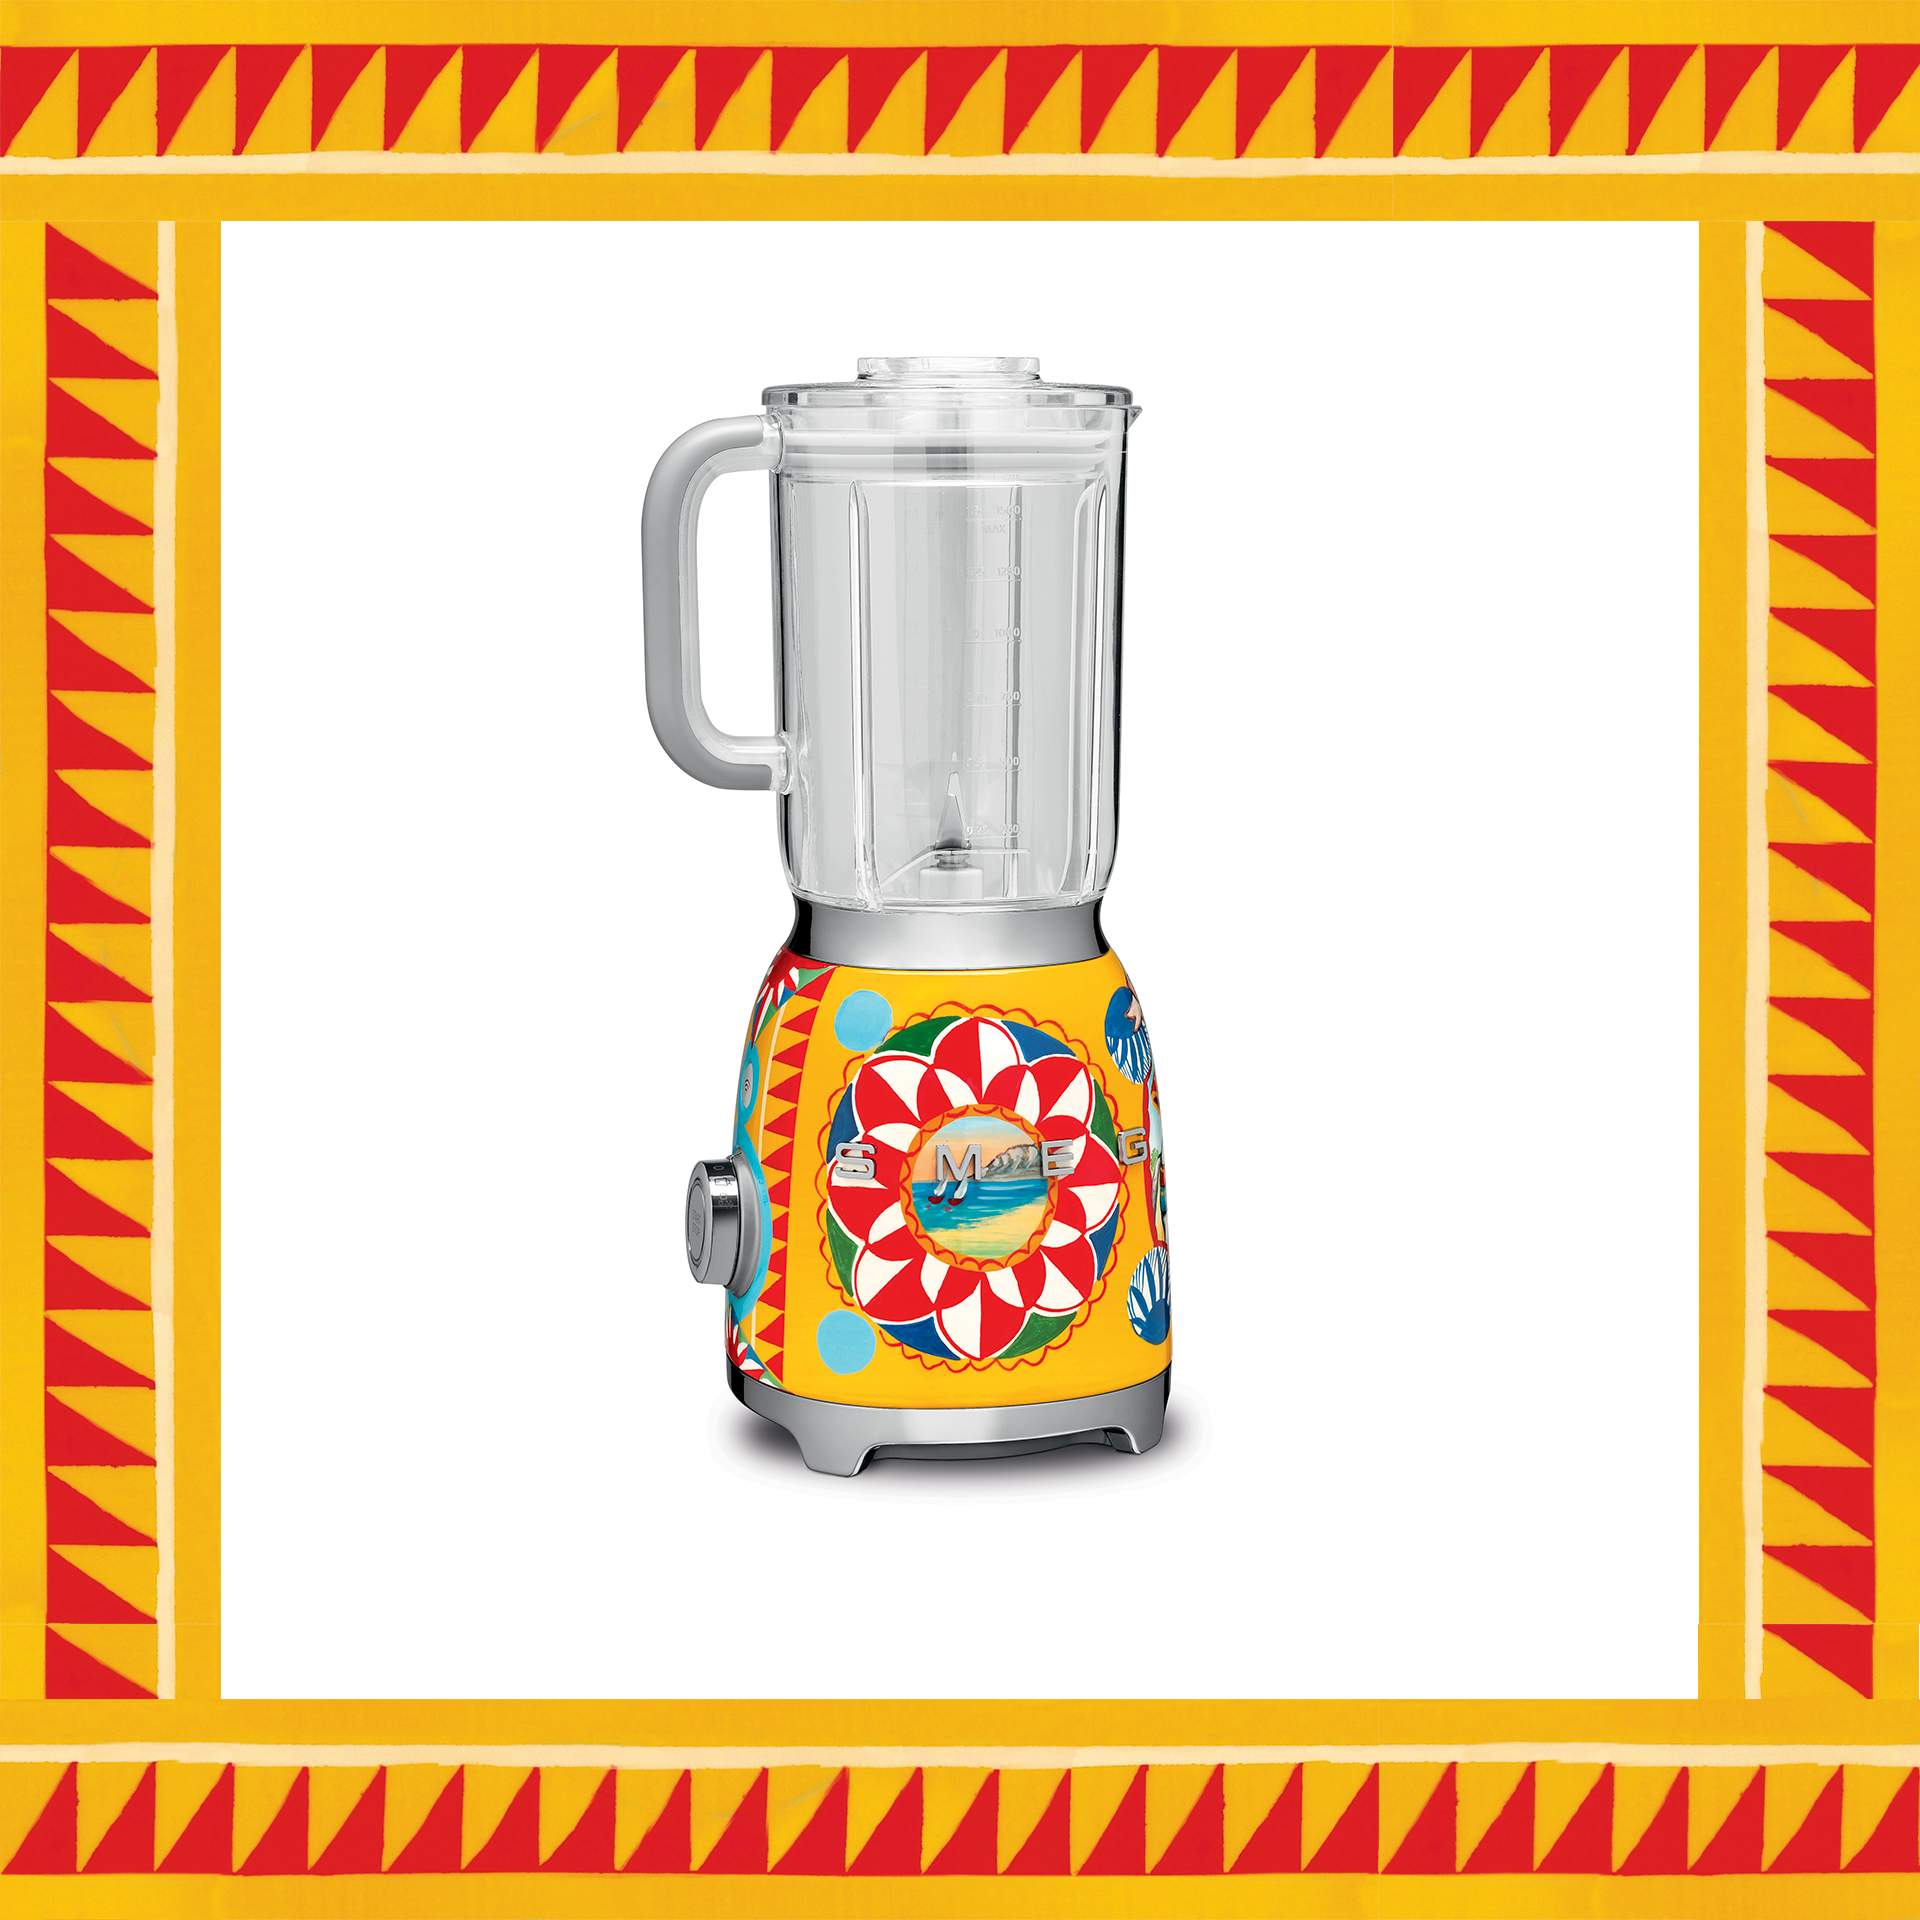 blender design Smeg & Dolce&Gabbana - Sicily is my love